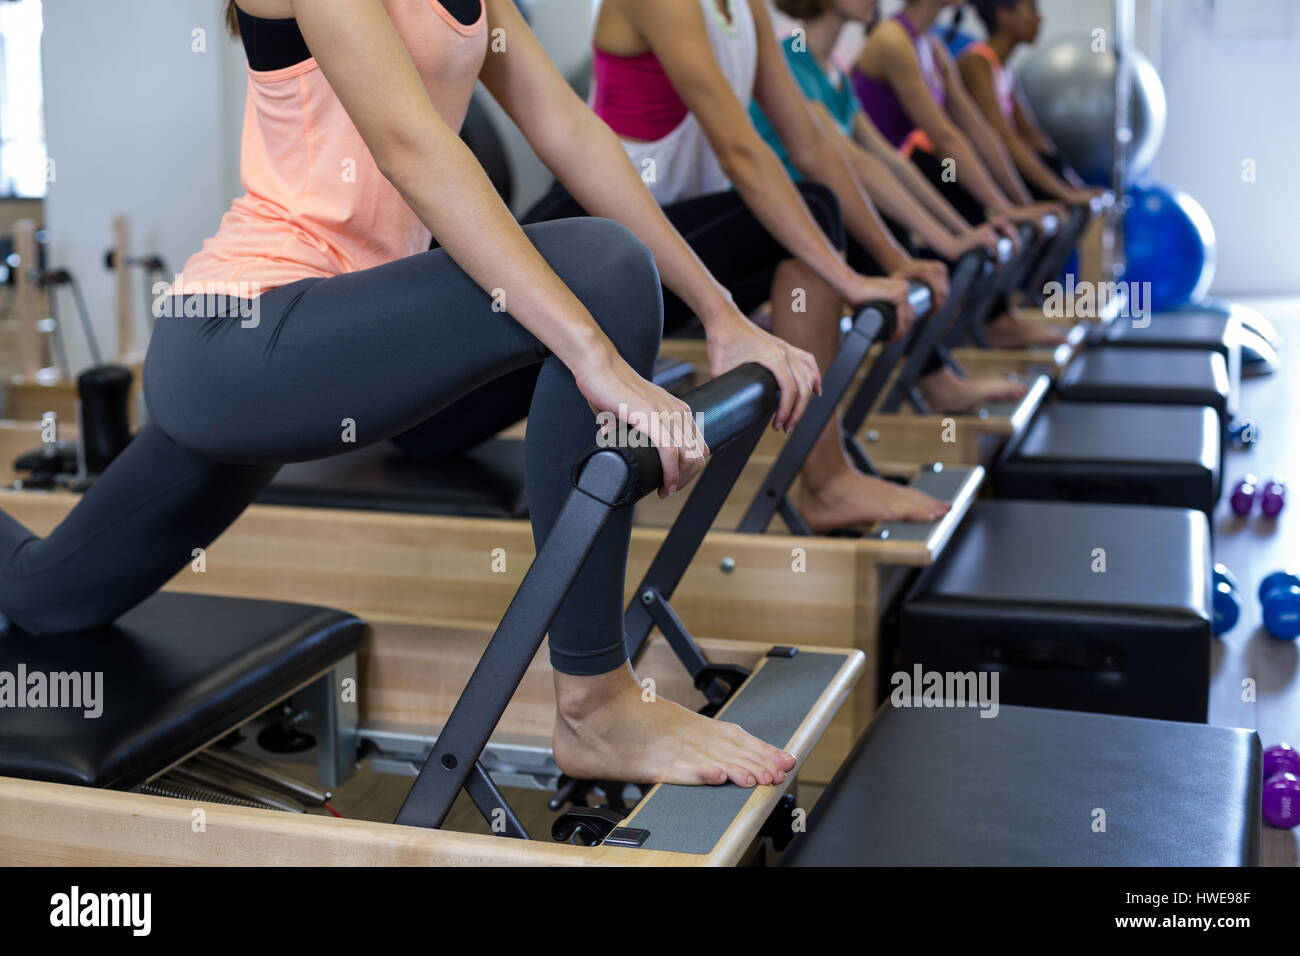 Group of women exercising on reformer in gym - Stock Image